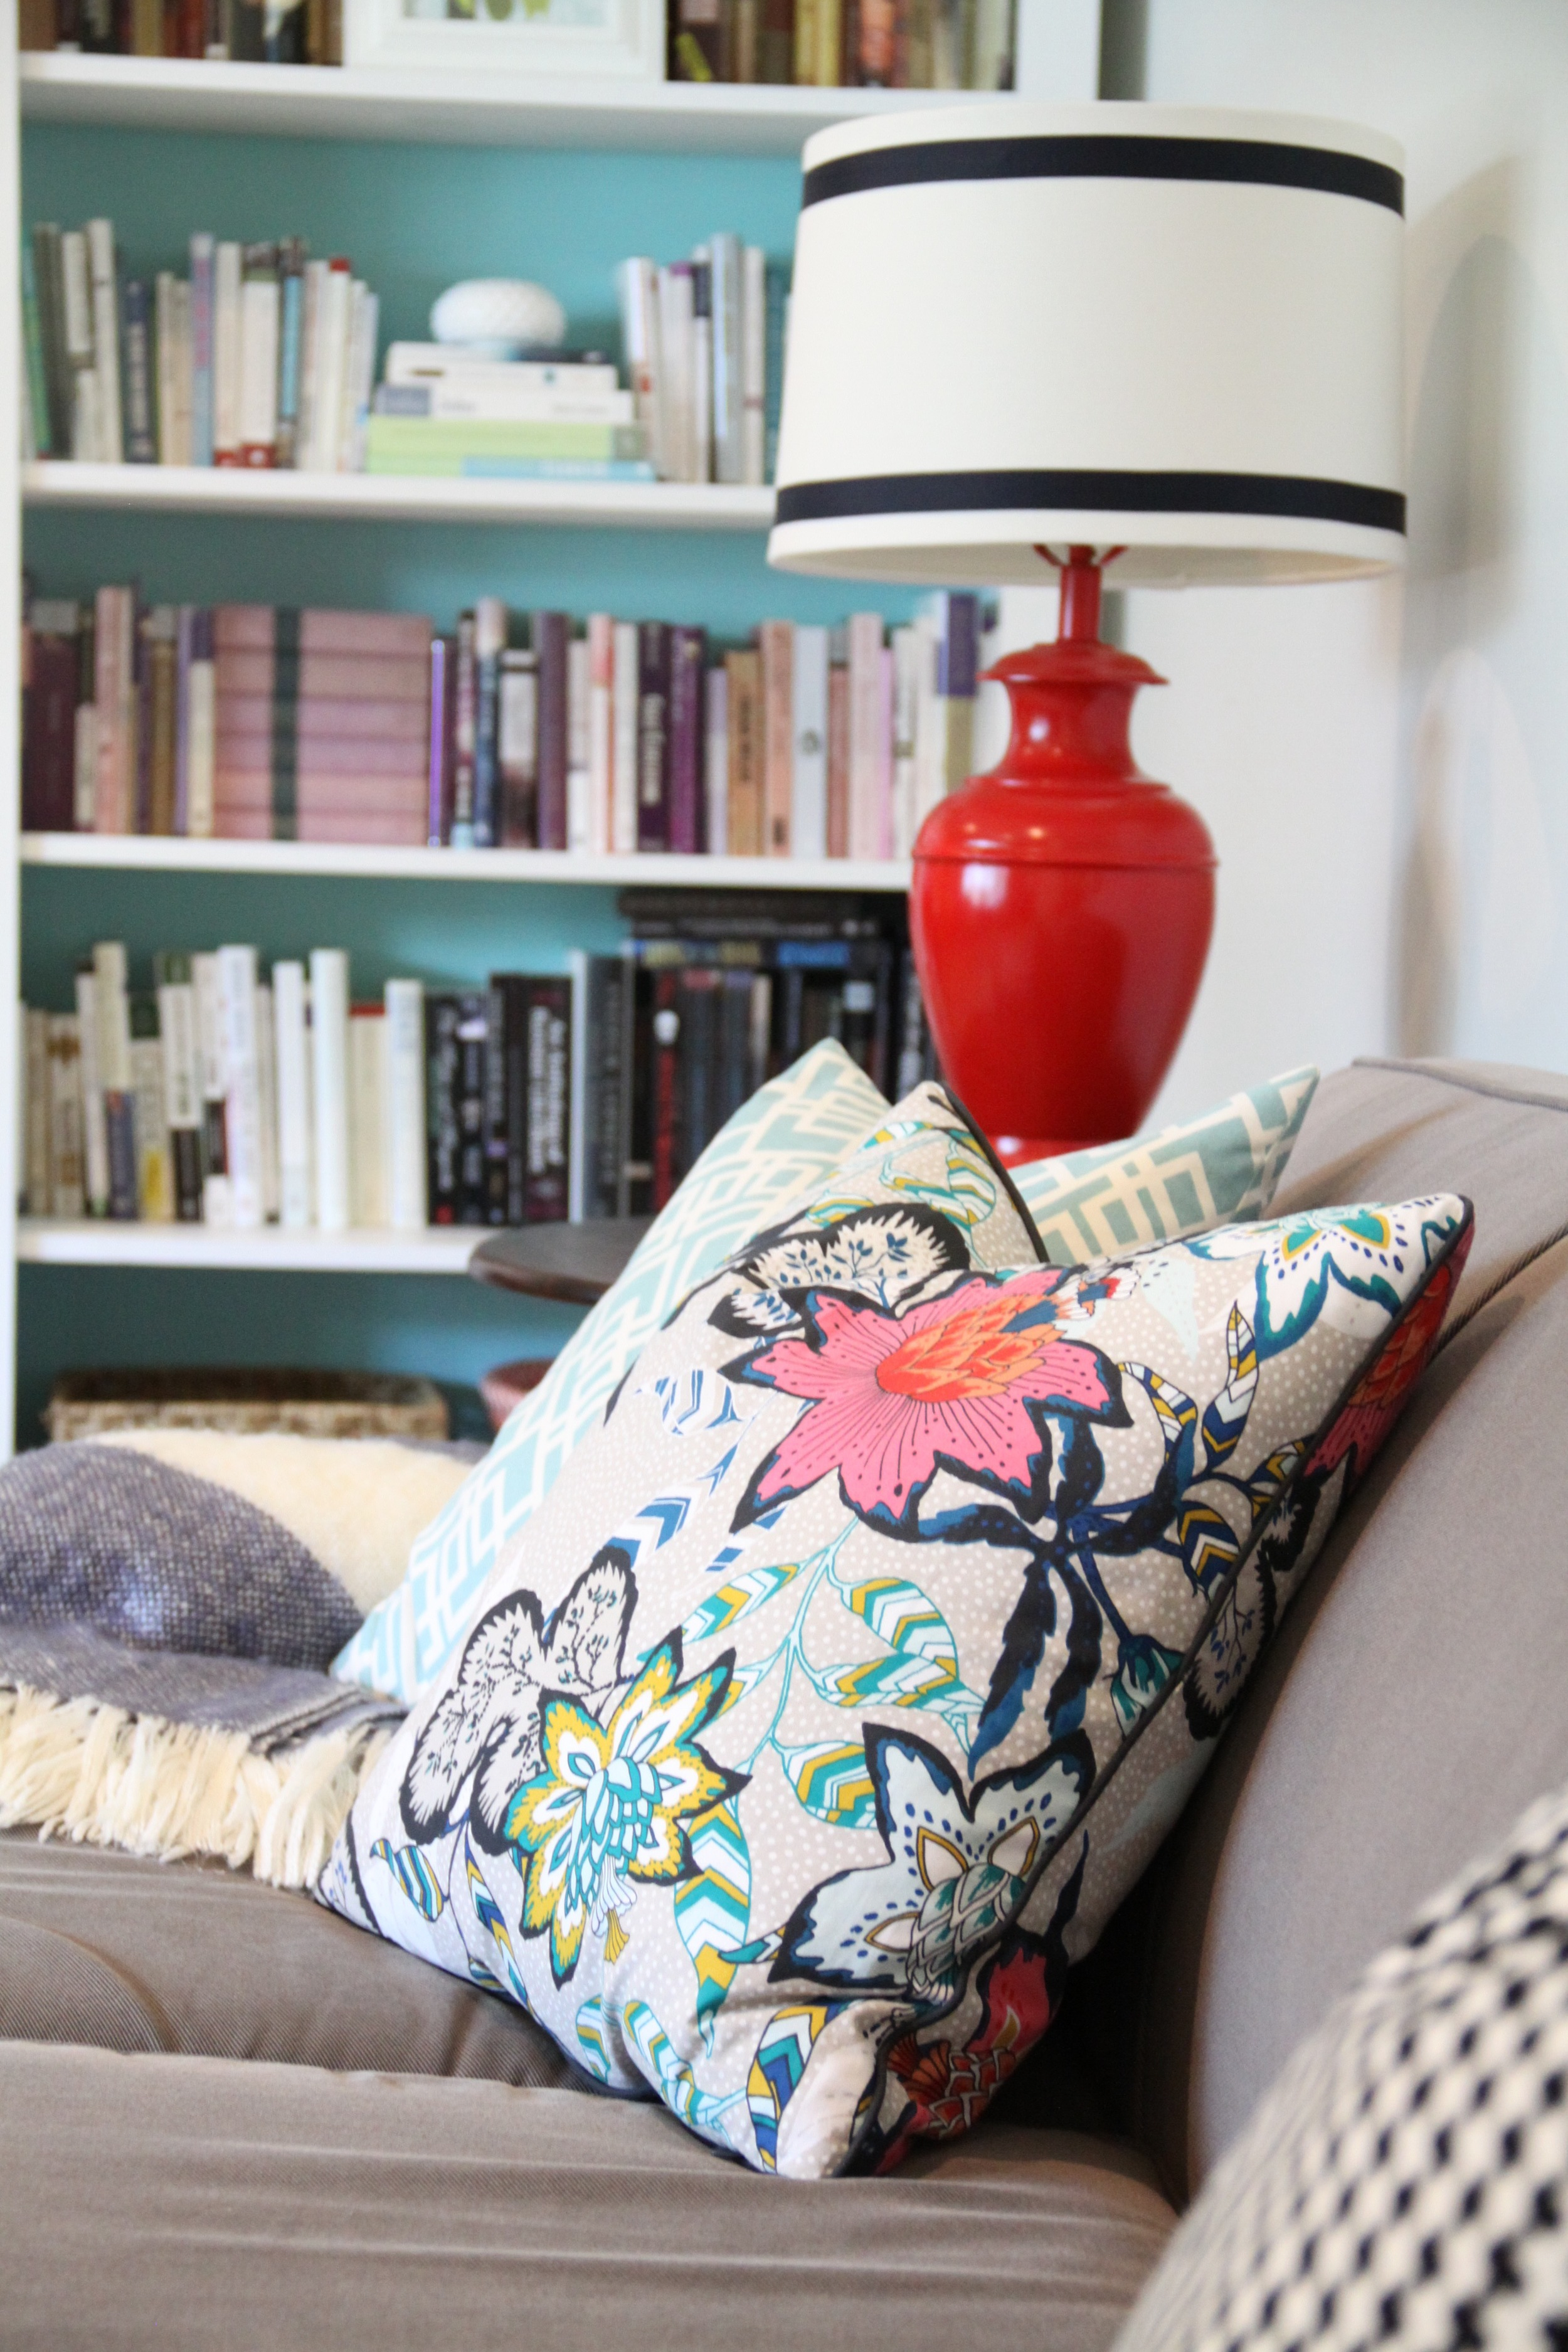 Living Room Colorful Pillow and DIY Bookshelves